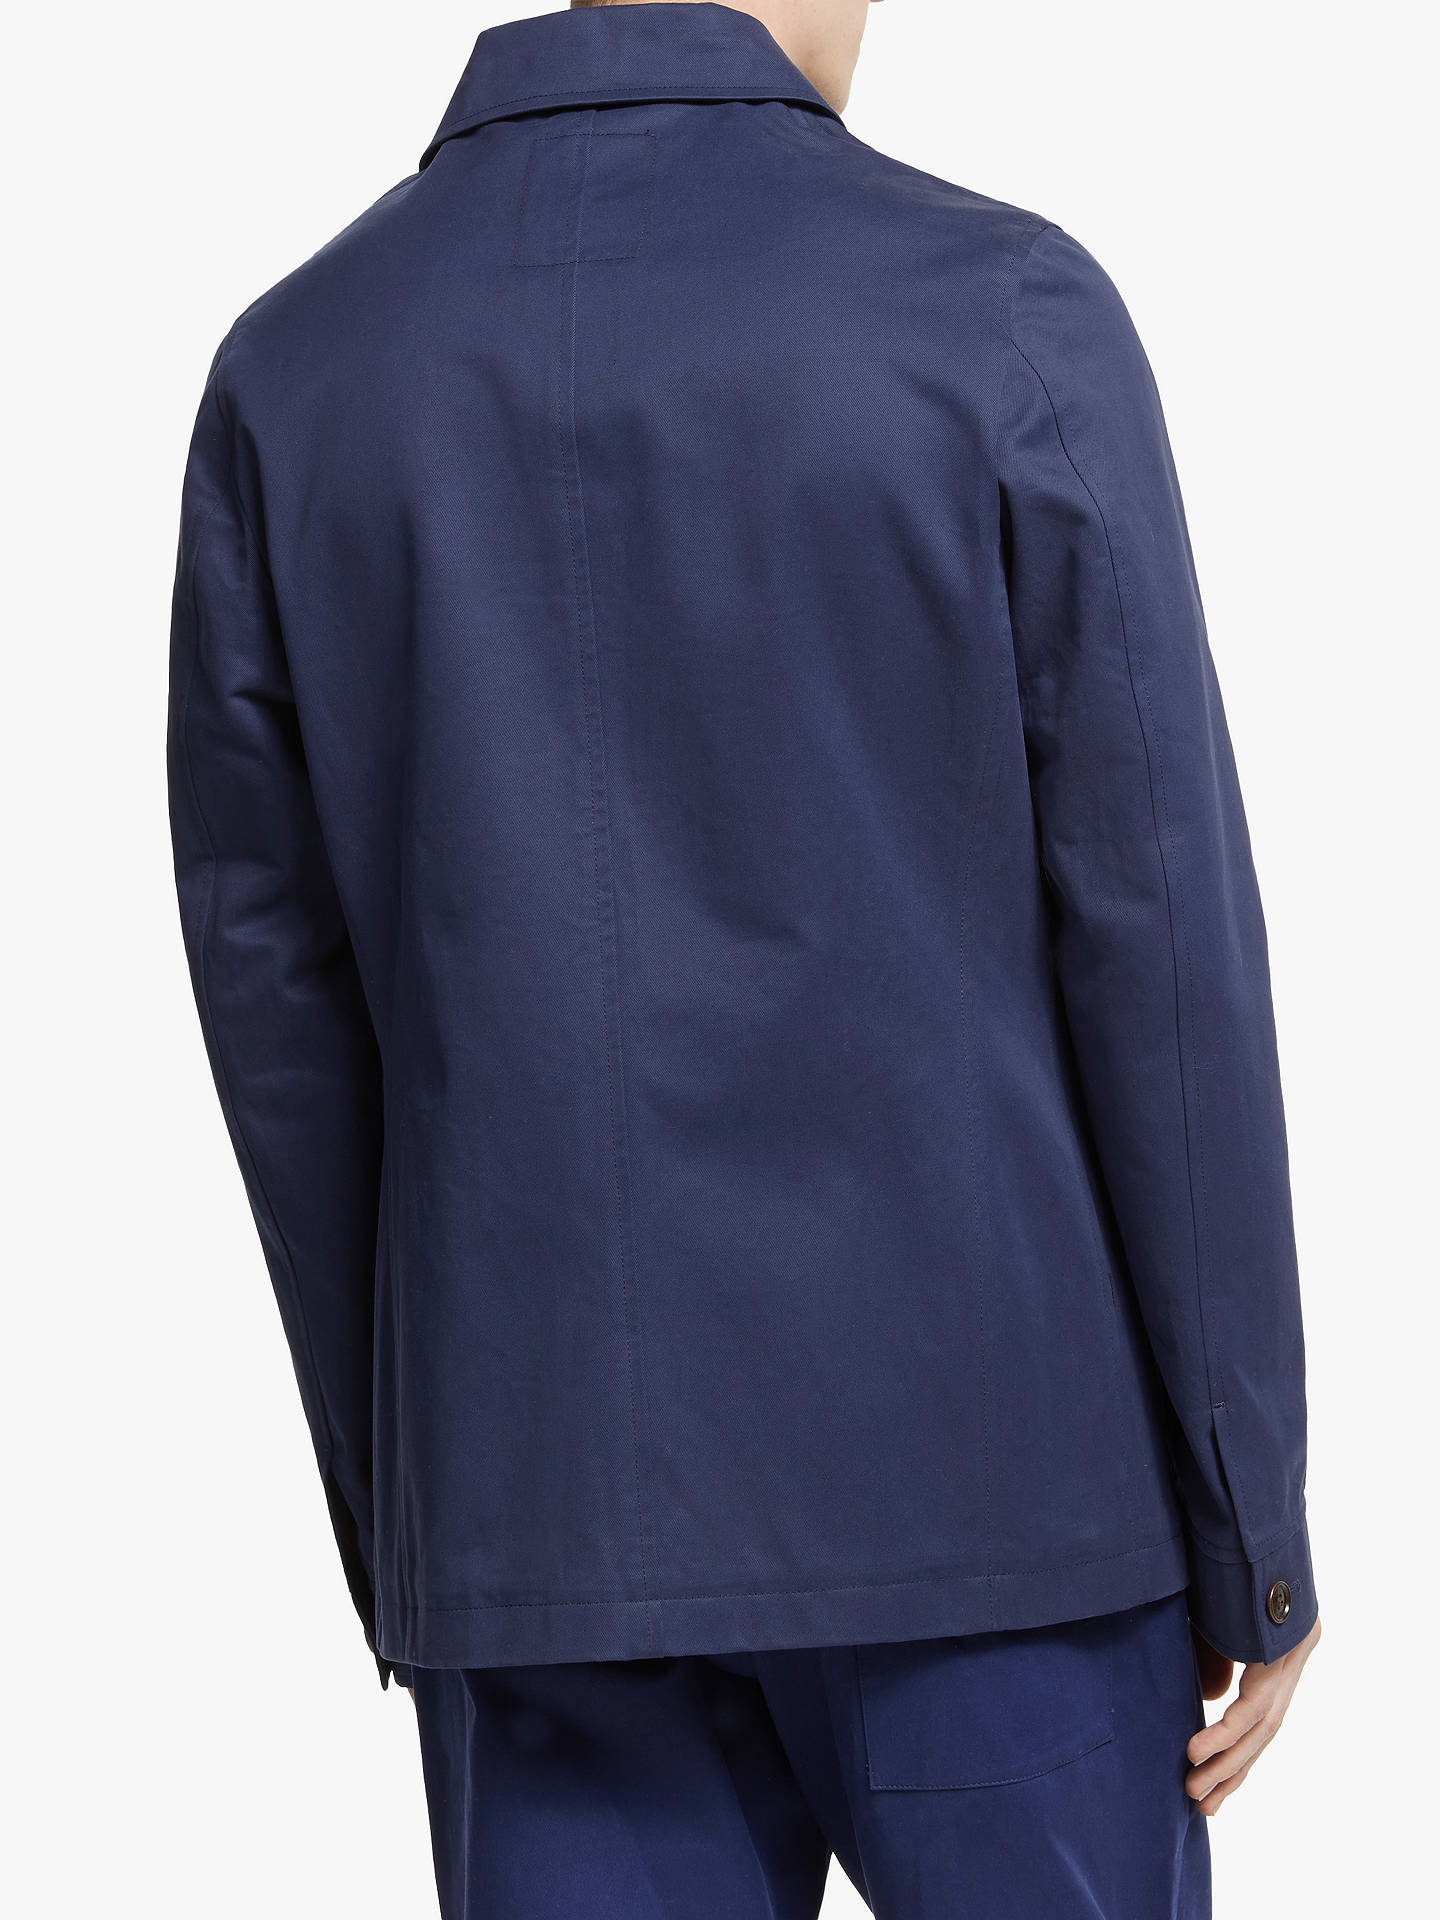 Buy Wax London Elland Jacket, Navy Tennyson, M Online at johnlewis.com